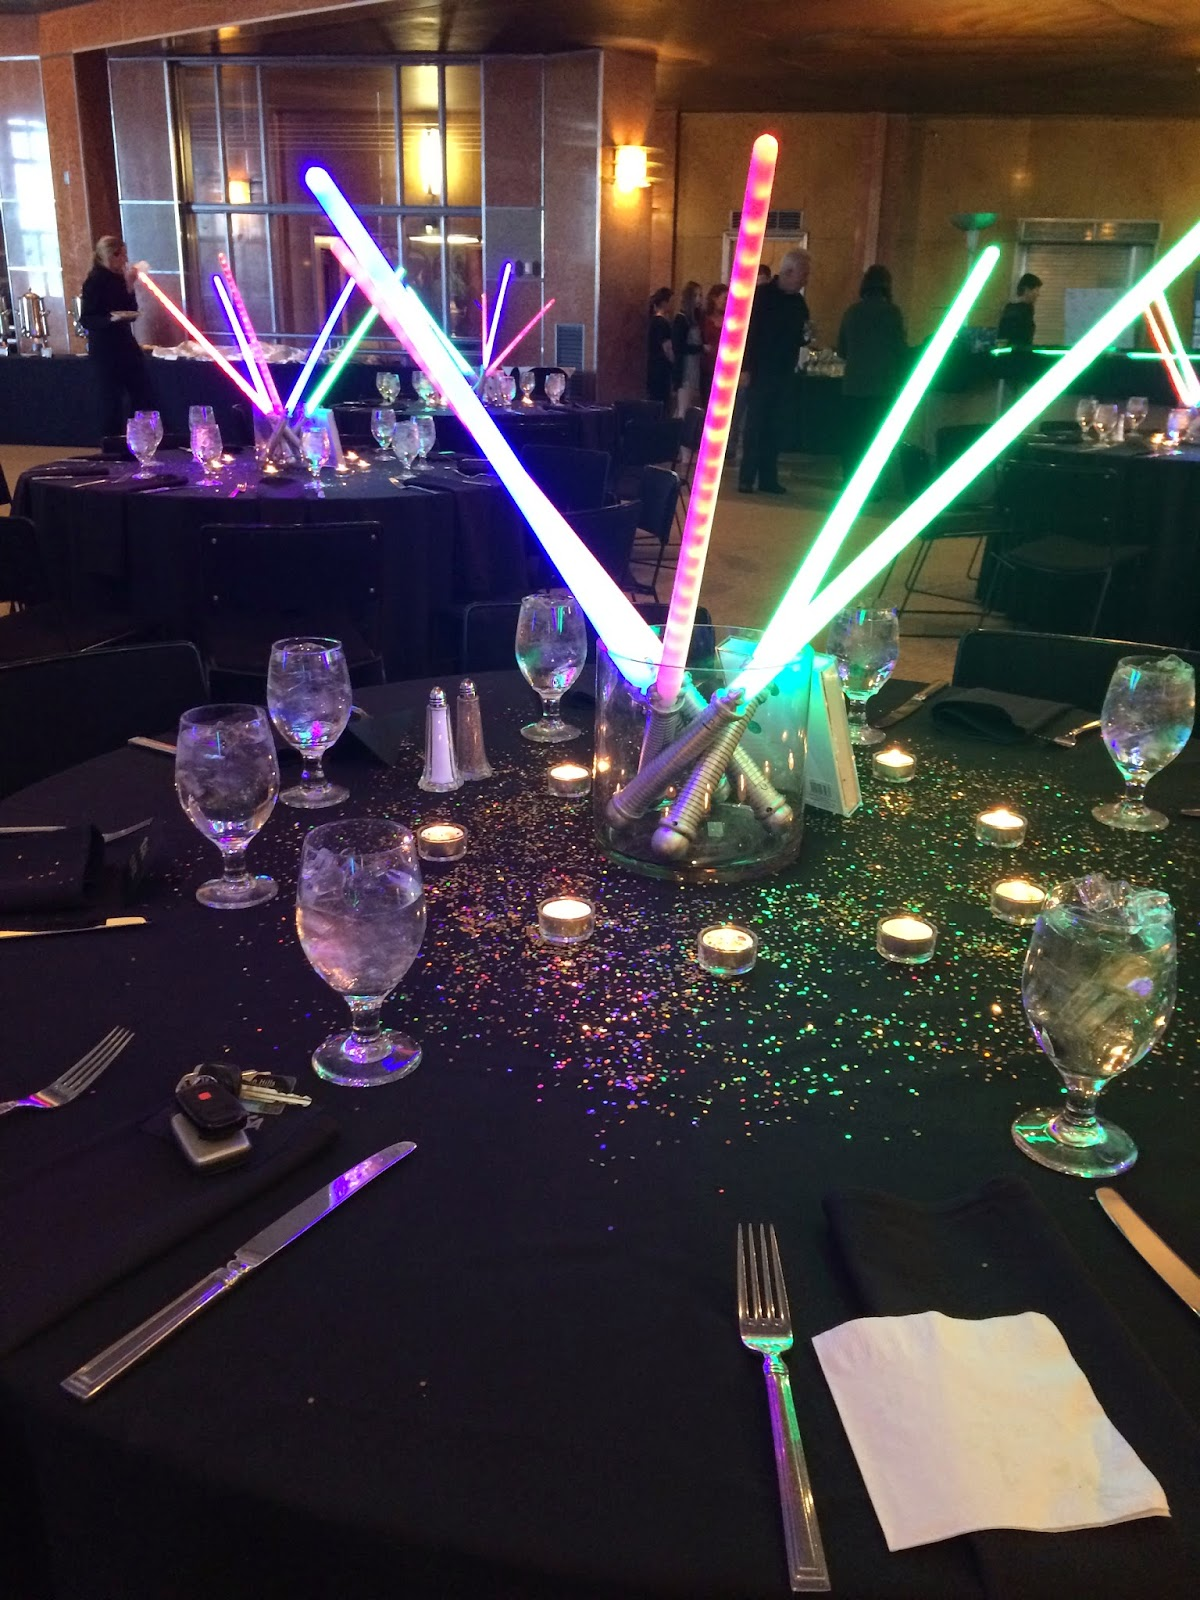 Margotmadison Star Wars Themed Bar Mitzvah